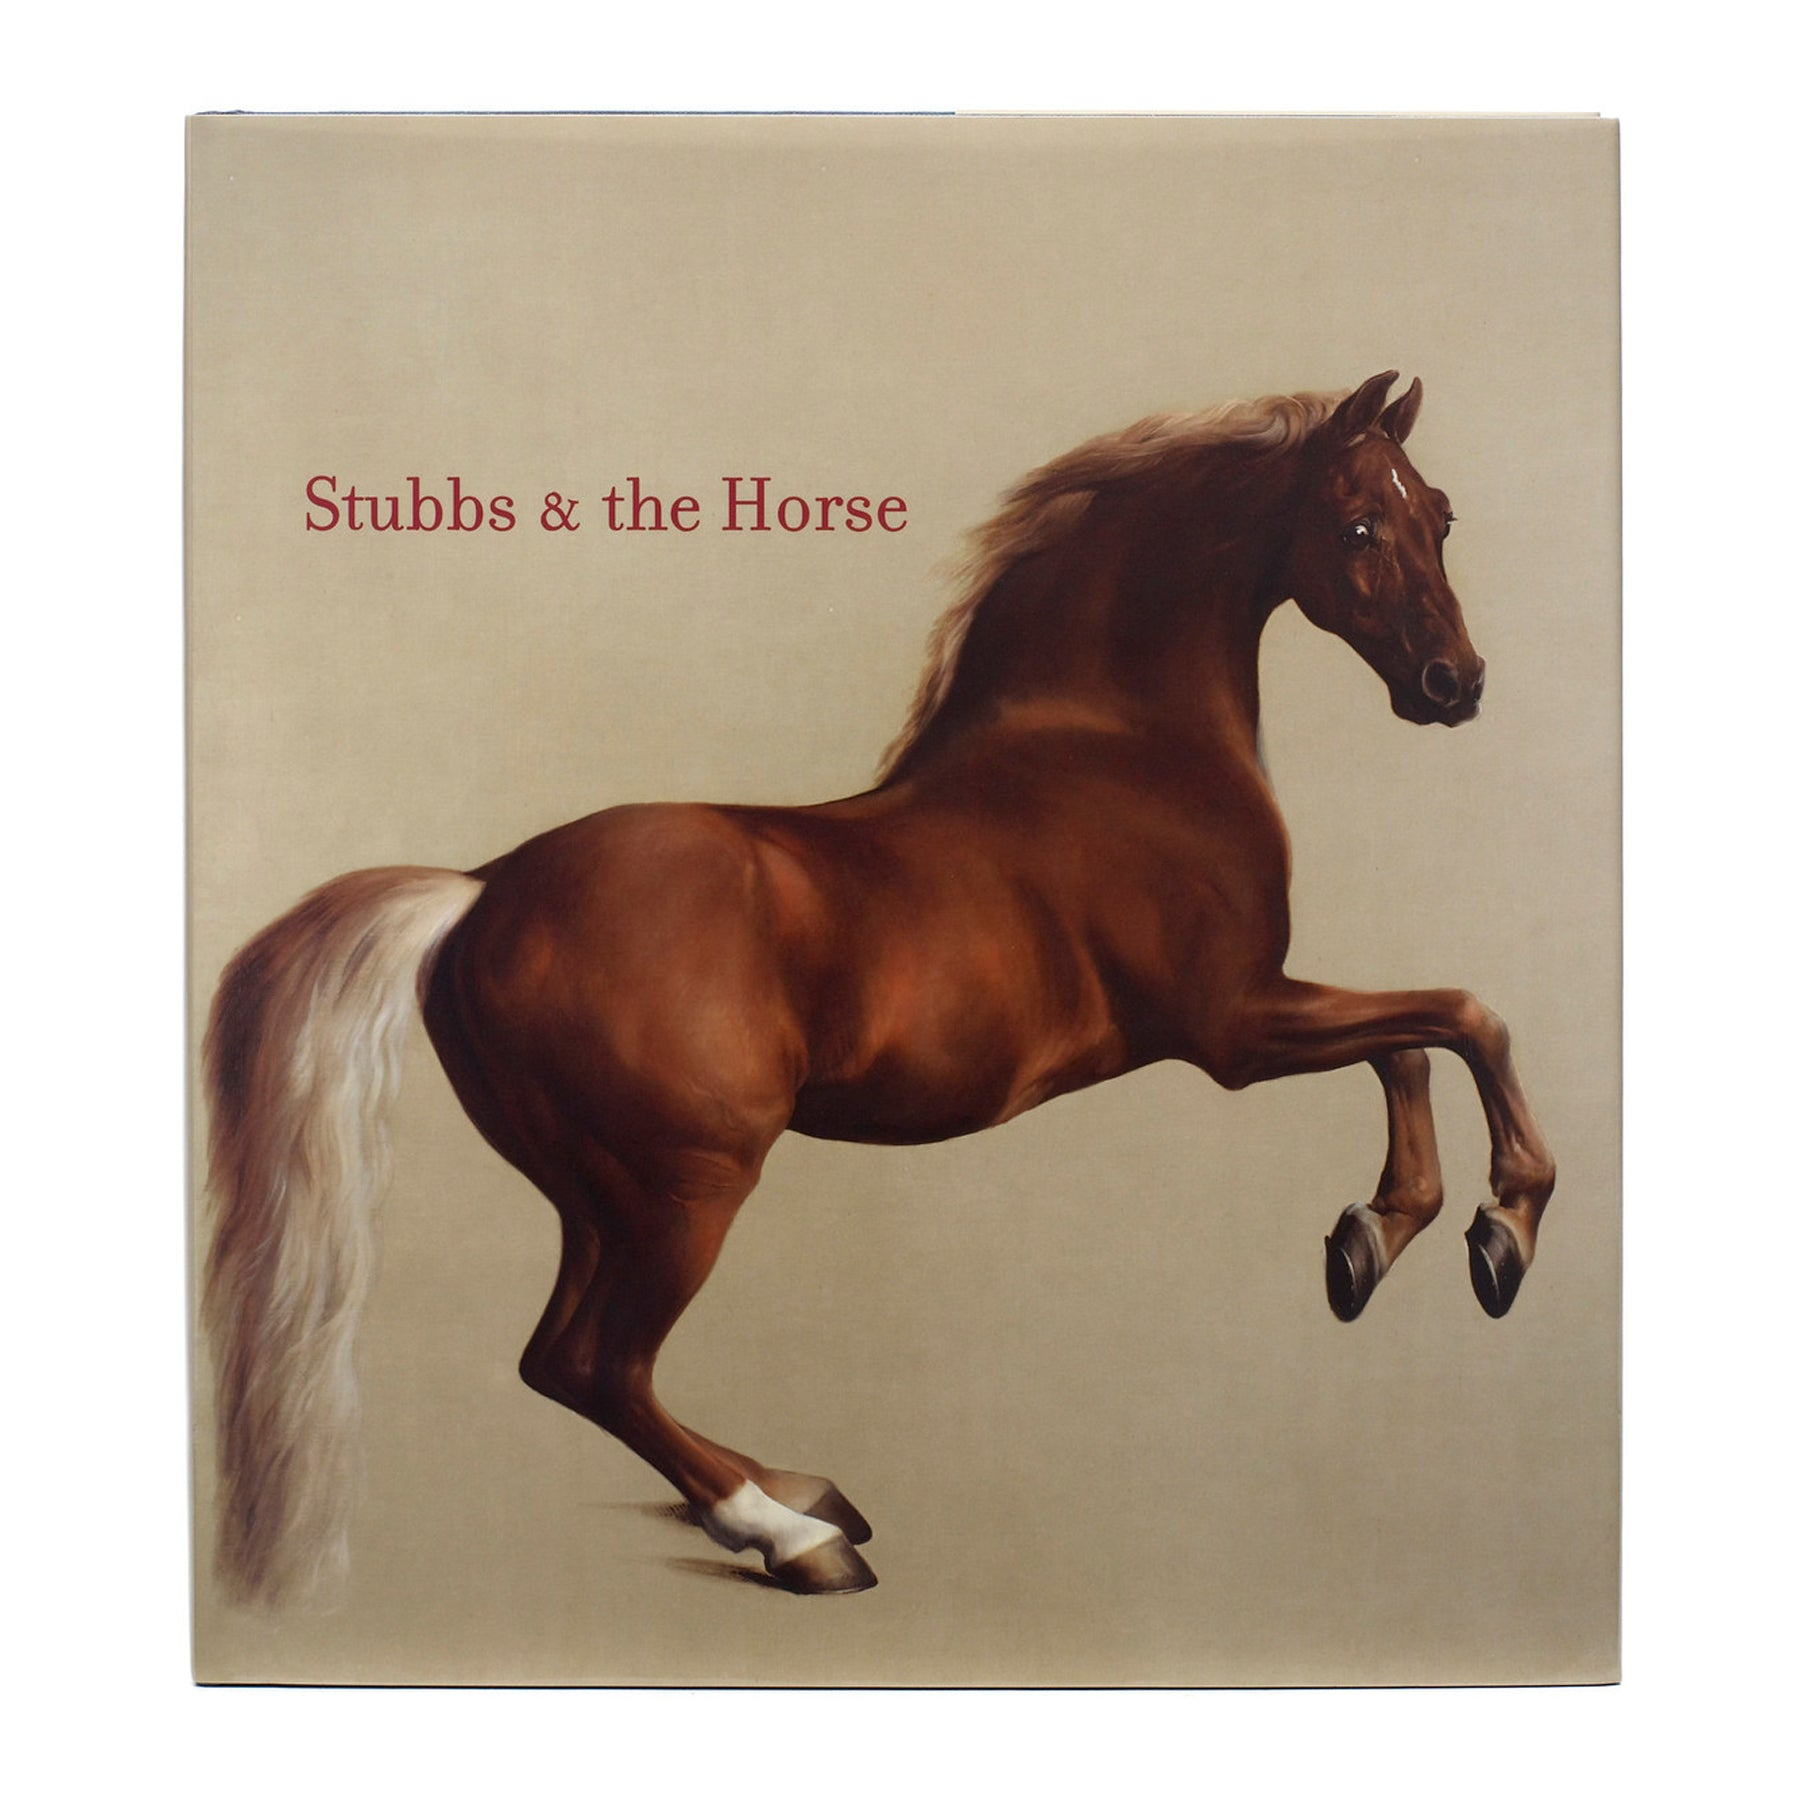 Stubbs and the Horse